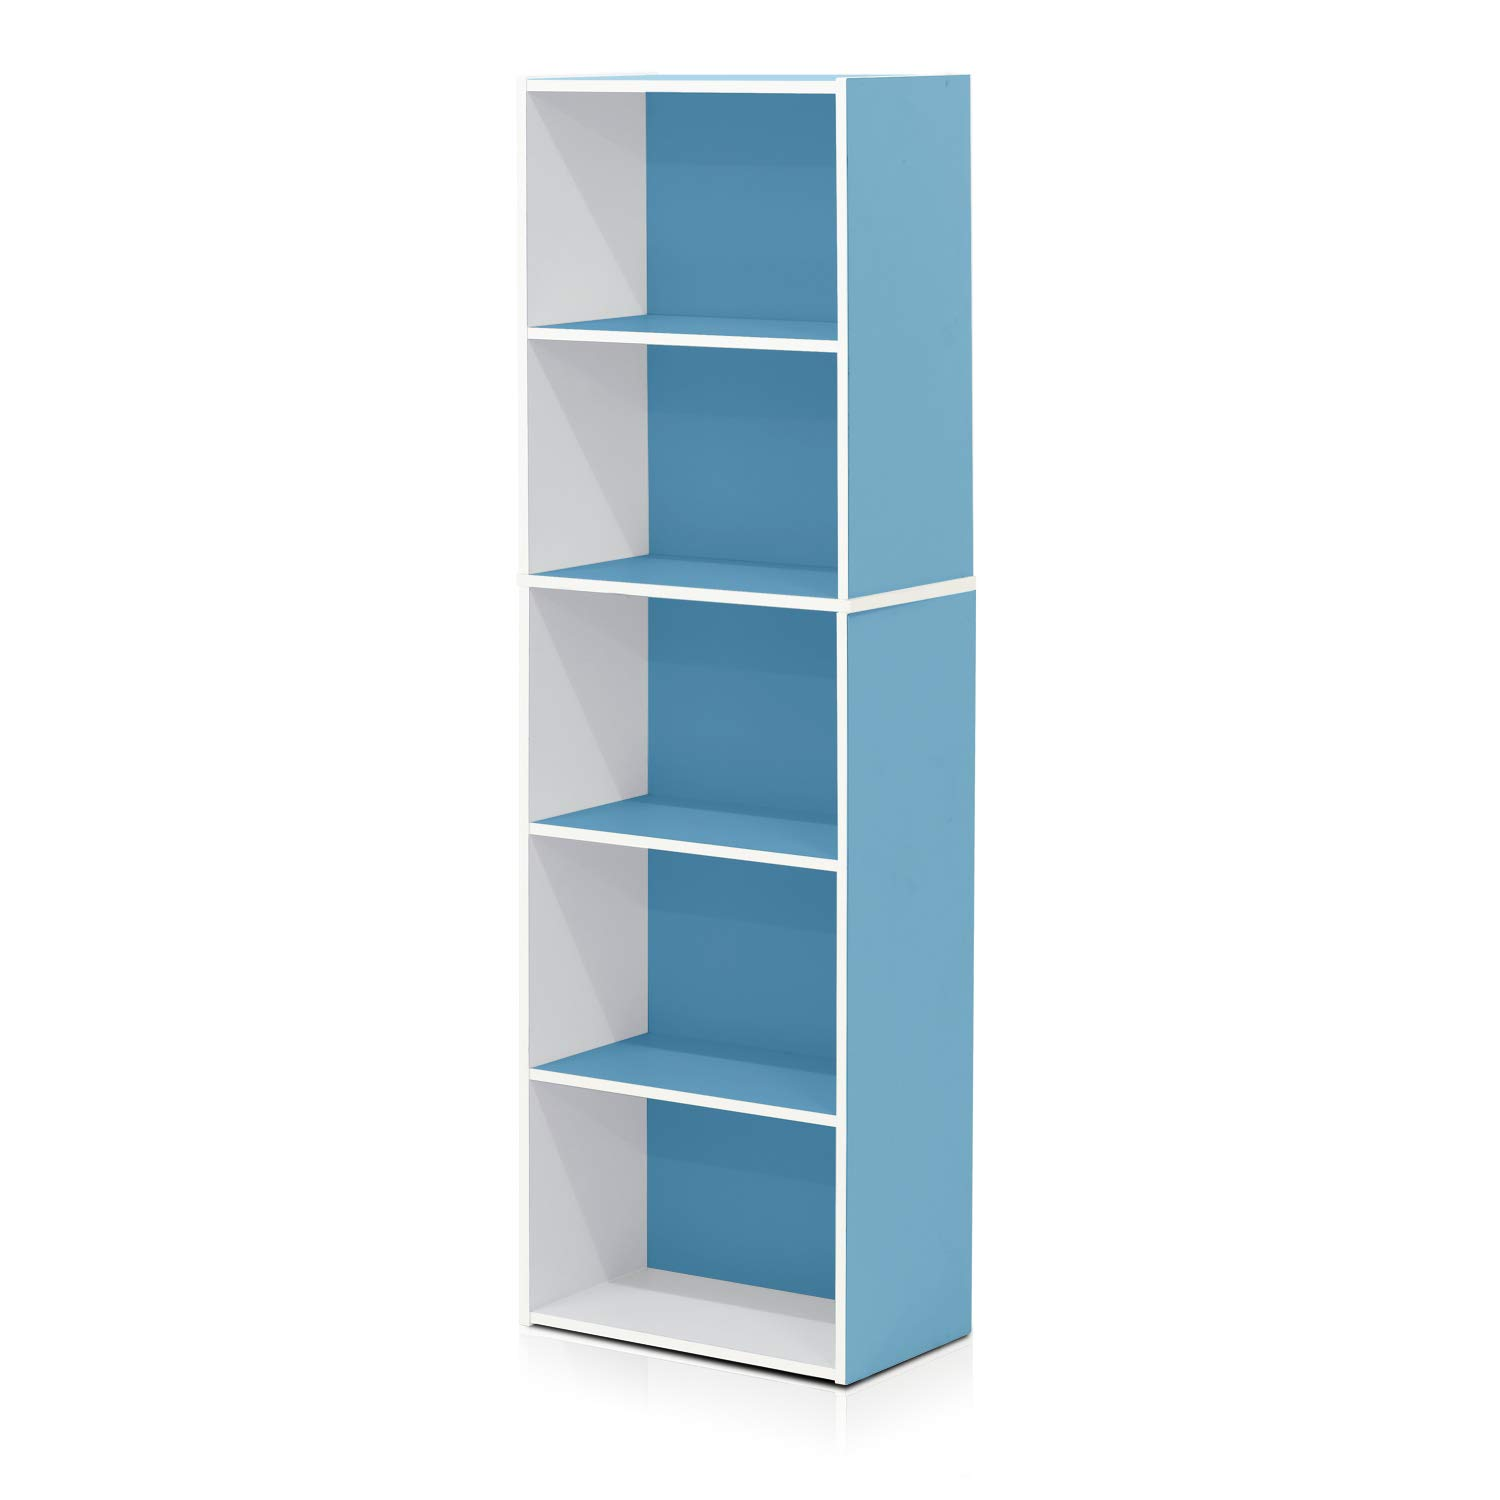 Furinno 5-Tier Reversible Color Open Shelf Bookcase , White/Light Blue 11055WH/LBL